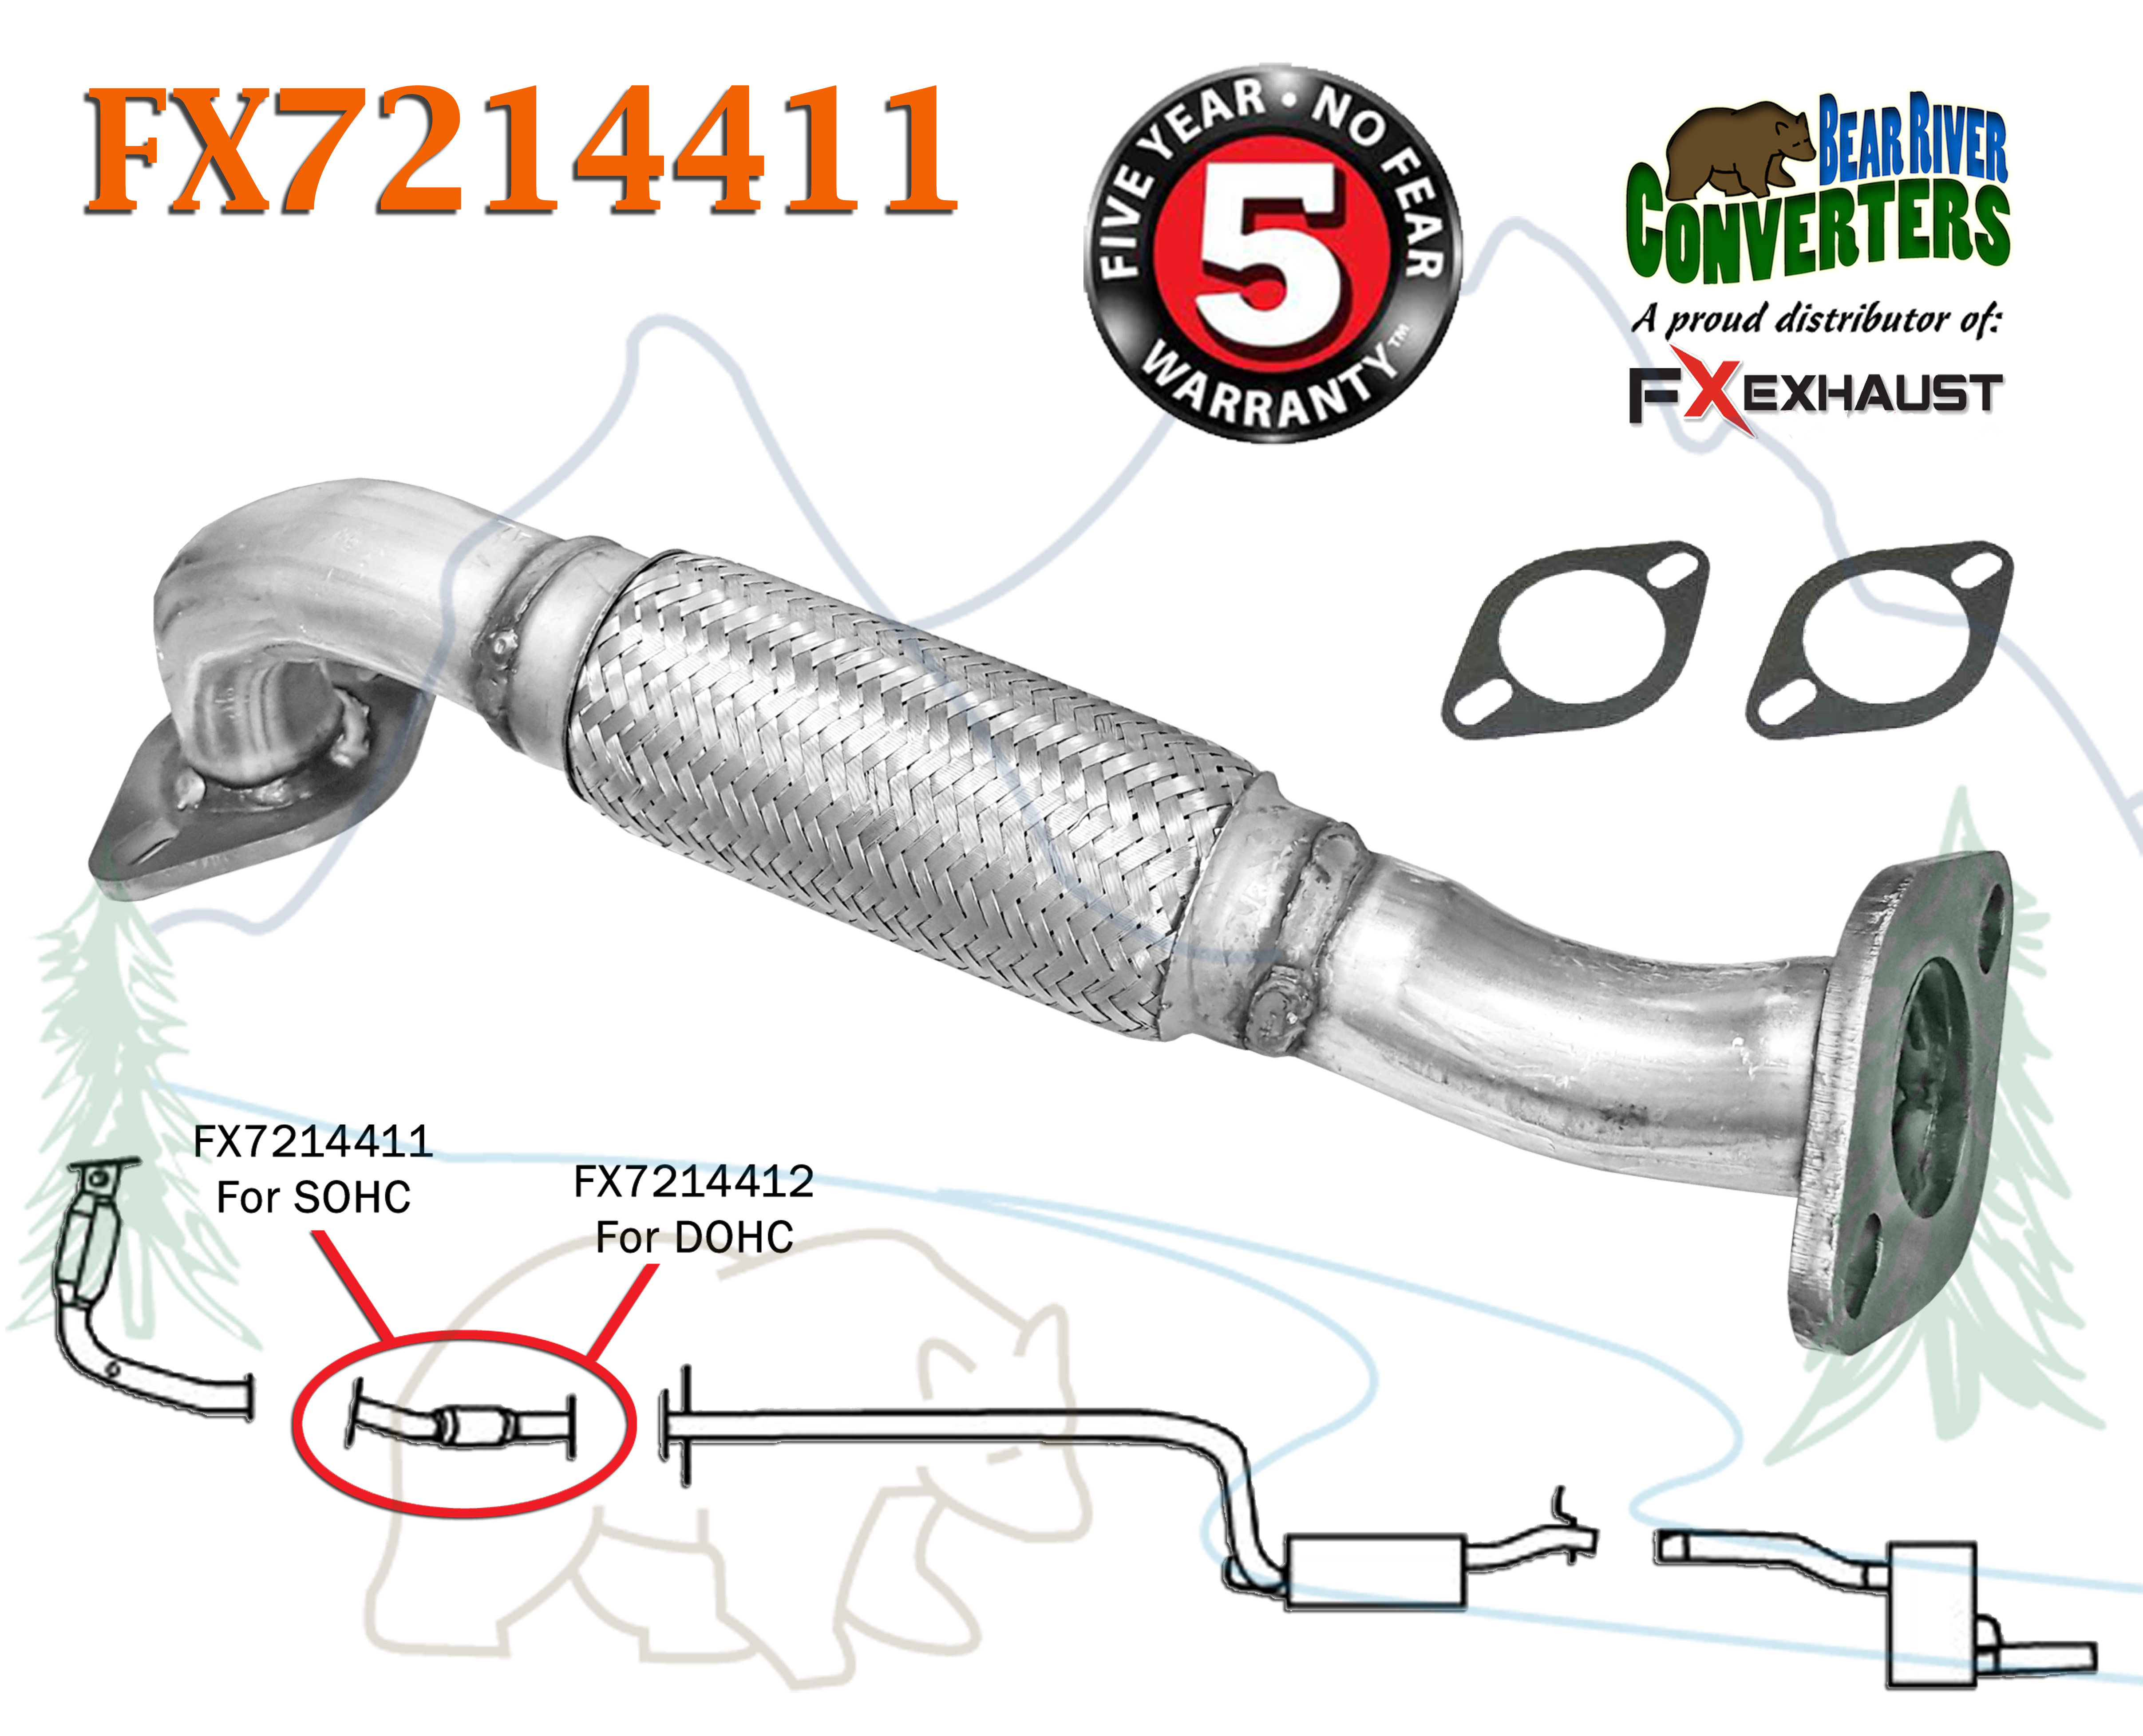 DIRECT FIT FRONT FLEX PIPE FOR 2000 2001 2002 2003 2004 FORD FOCUS 2.0L DOHC